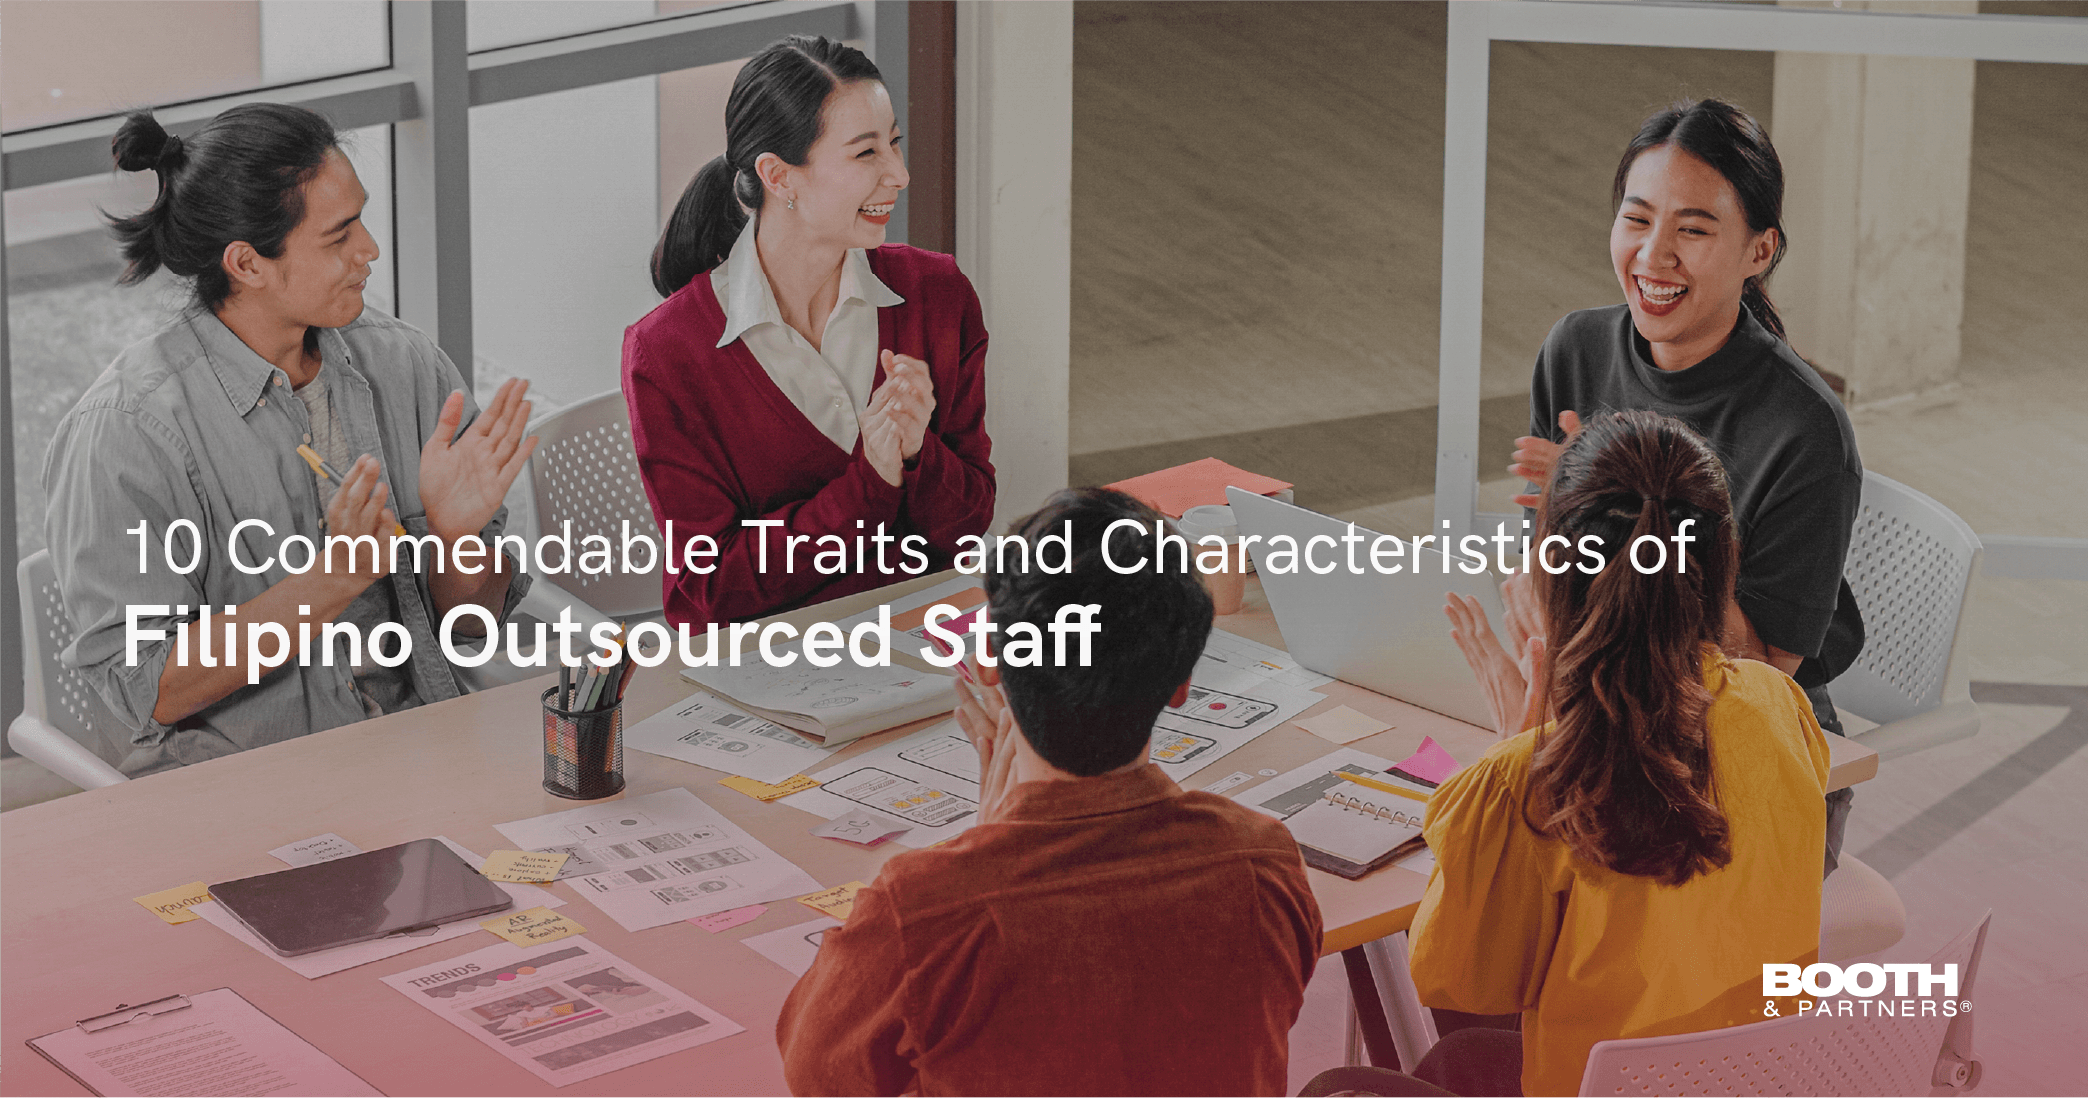 10-Commendable-Traits-and-Characteristics-of-Filipino-Ousourced-Staff